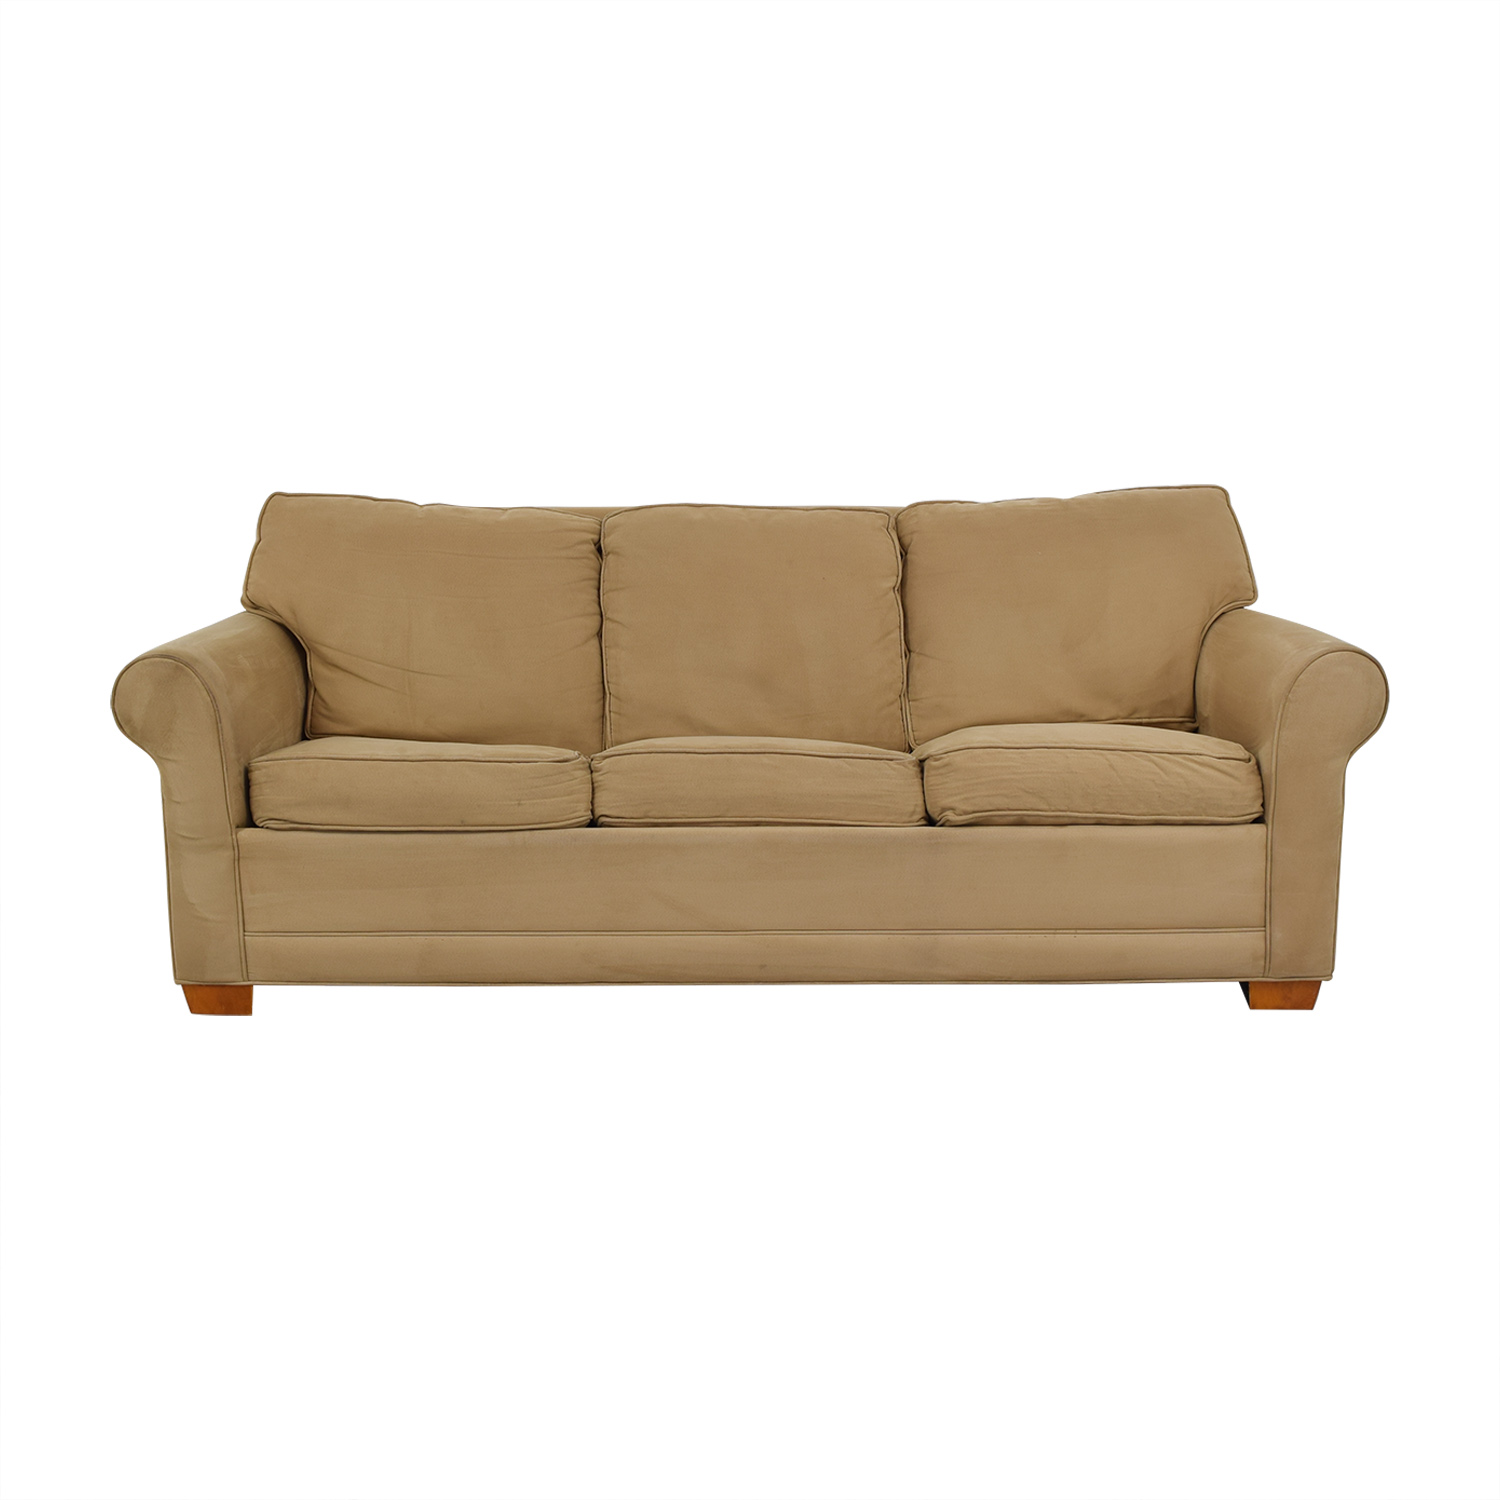 Raymour & Flanigan Sleeper Sofa sale